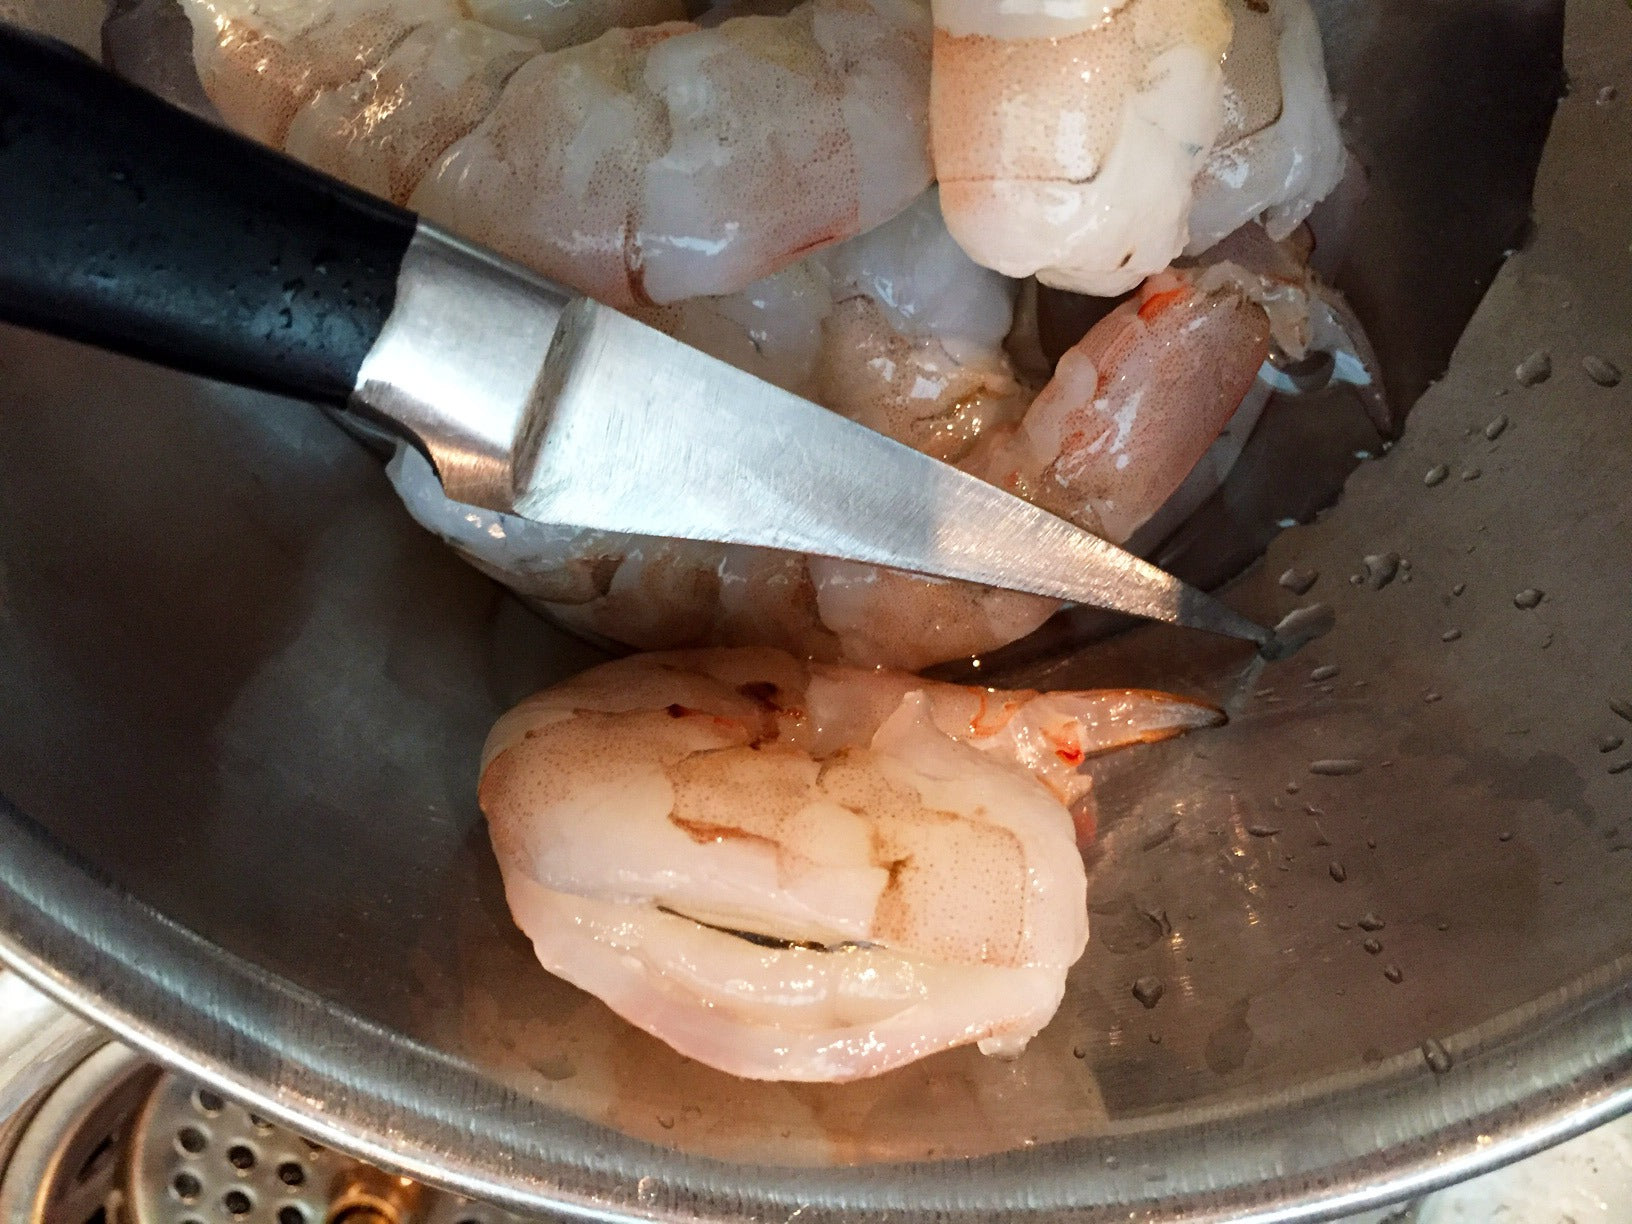 Shrimp de-veining